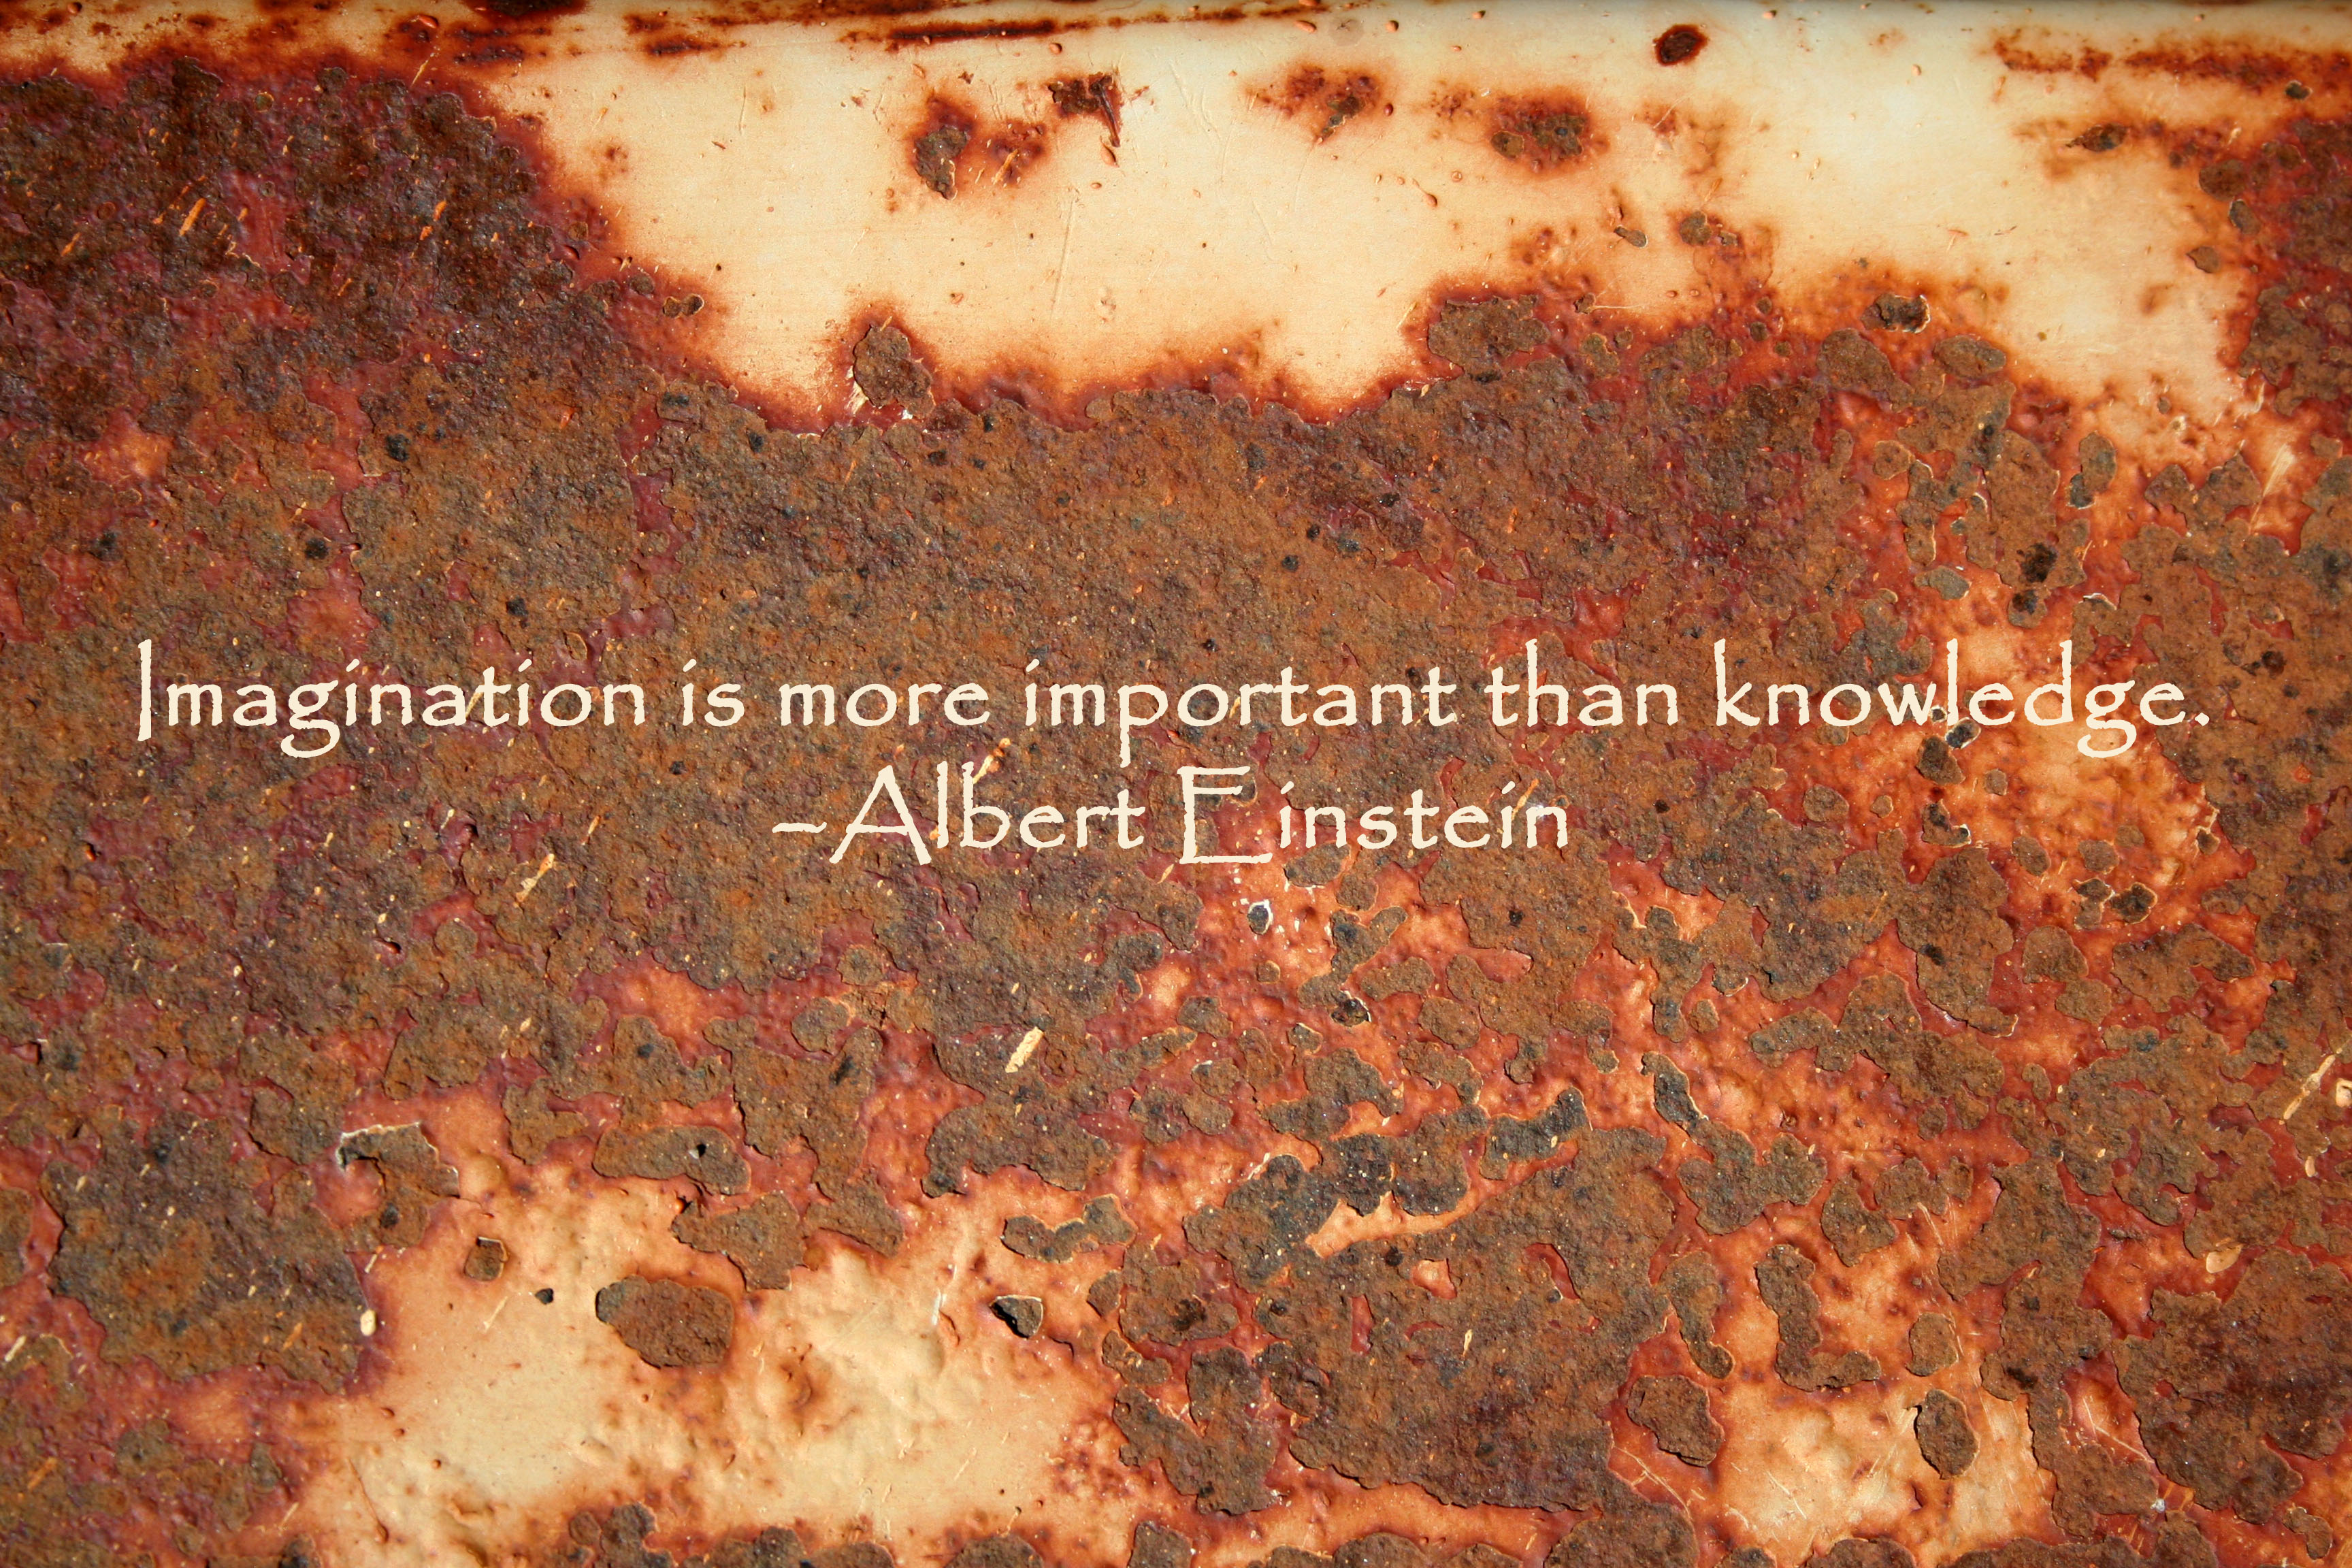 """""""Imagination is more important than knowledge."""" - Albert Einstein quote on a photo of rusted metal."""